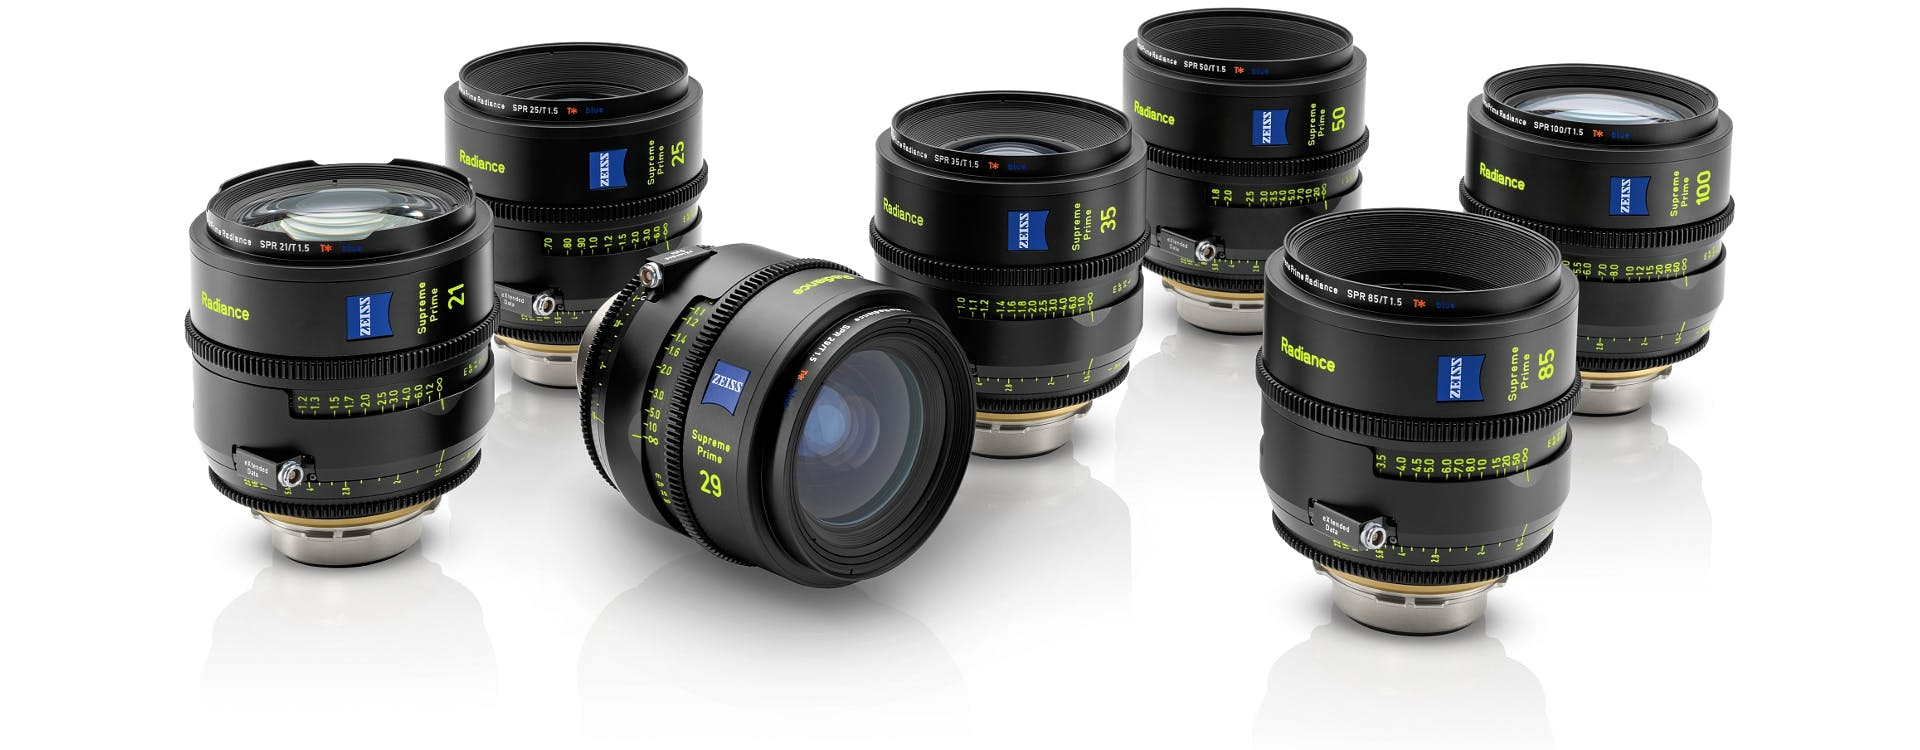 zeiss-supreme-prime-radiance-lenses-ts-1568716910673